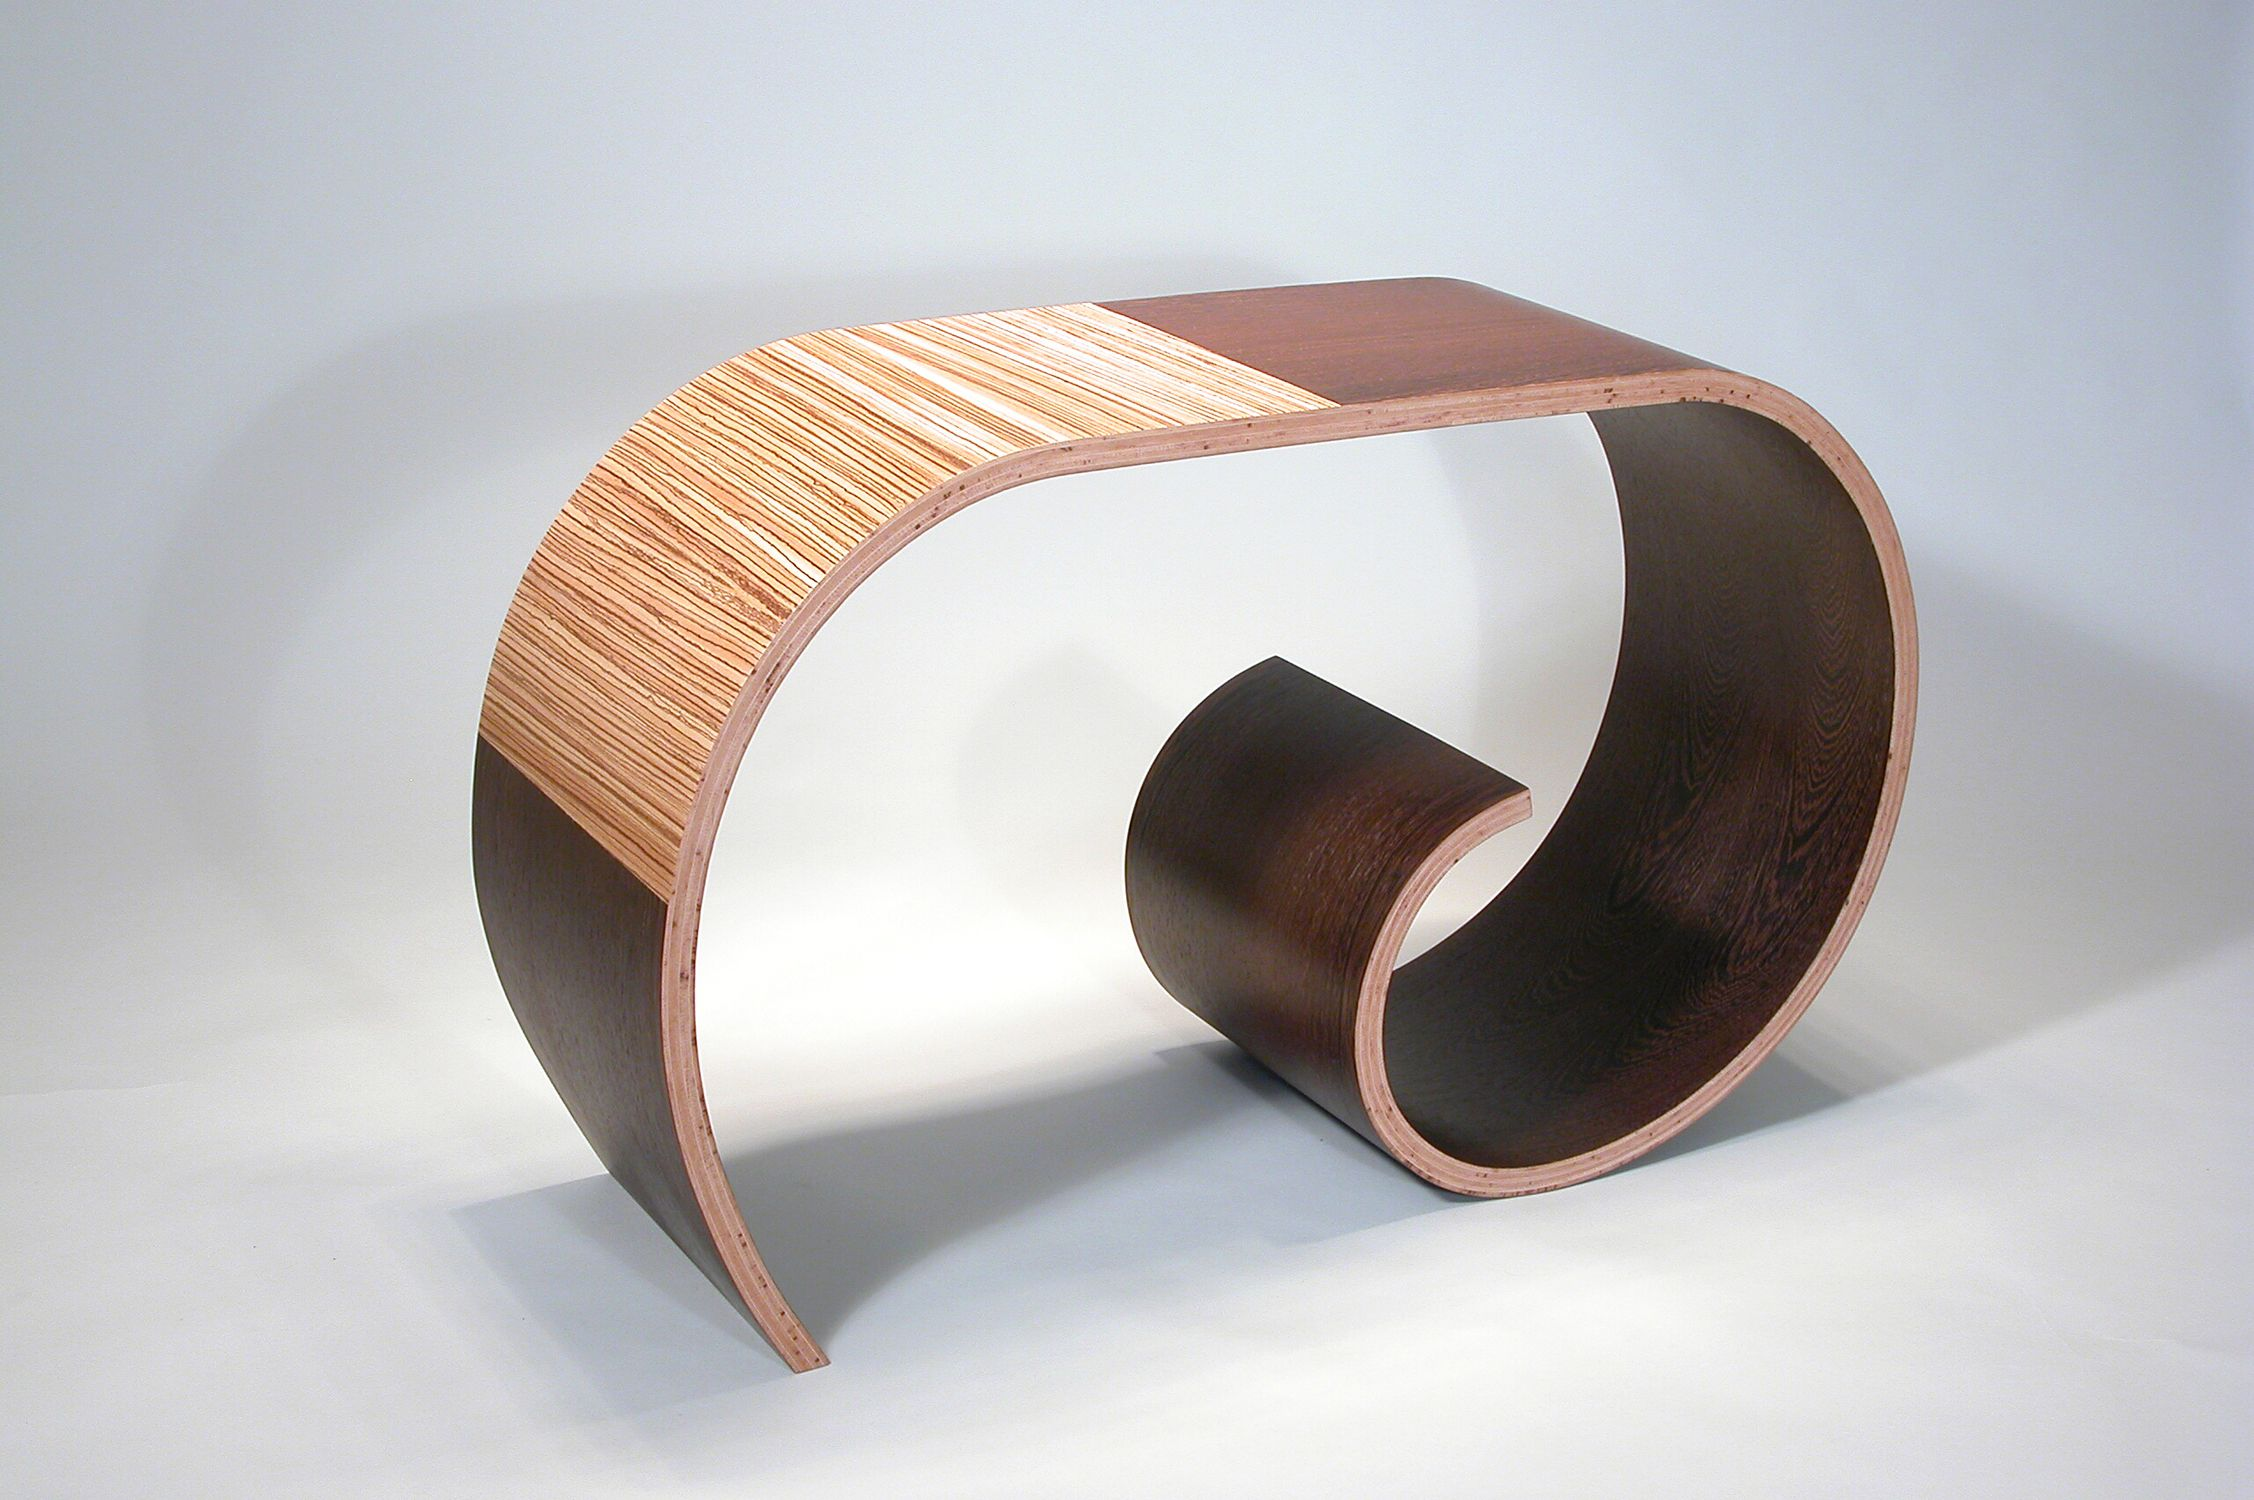 Low Crocus Table  by Kino Guerin